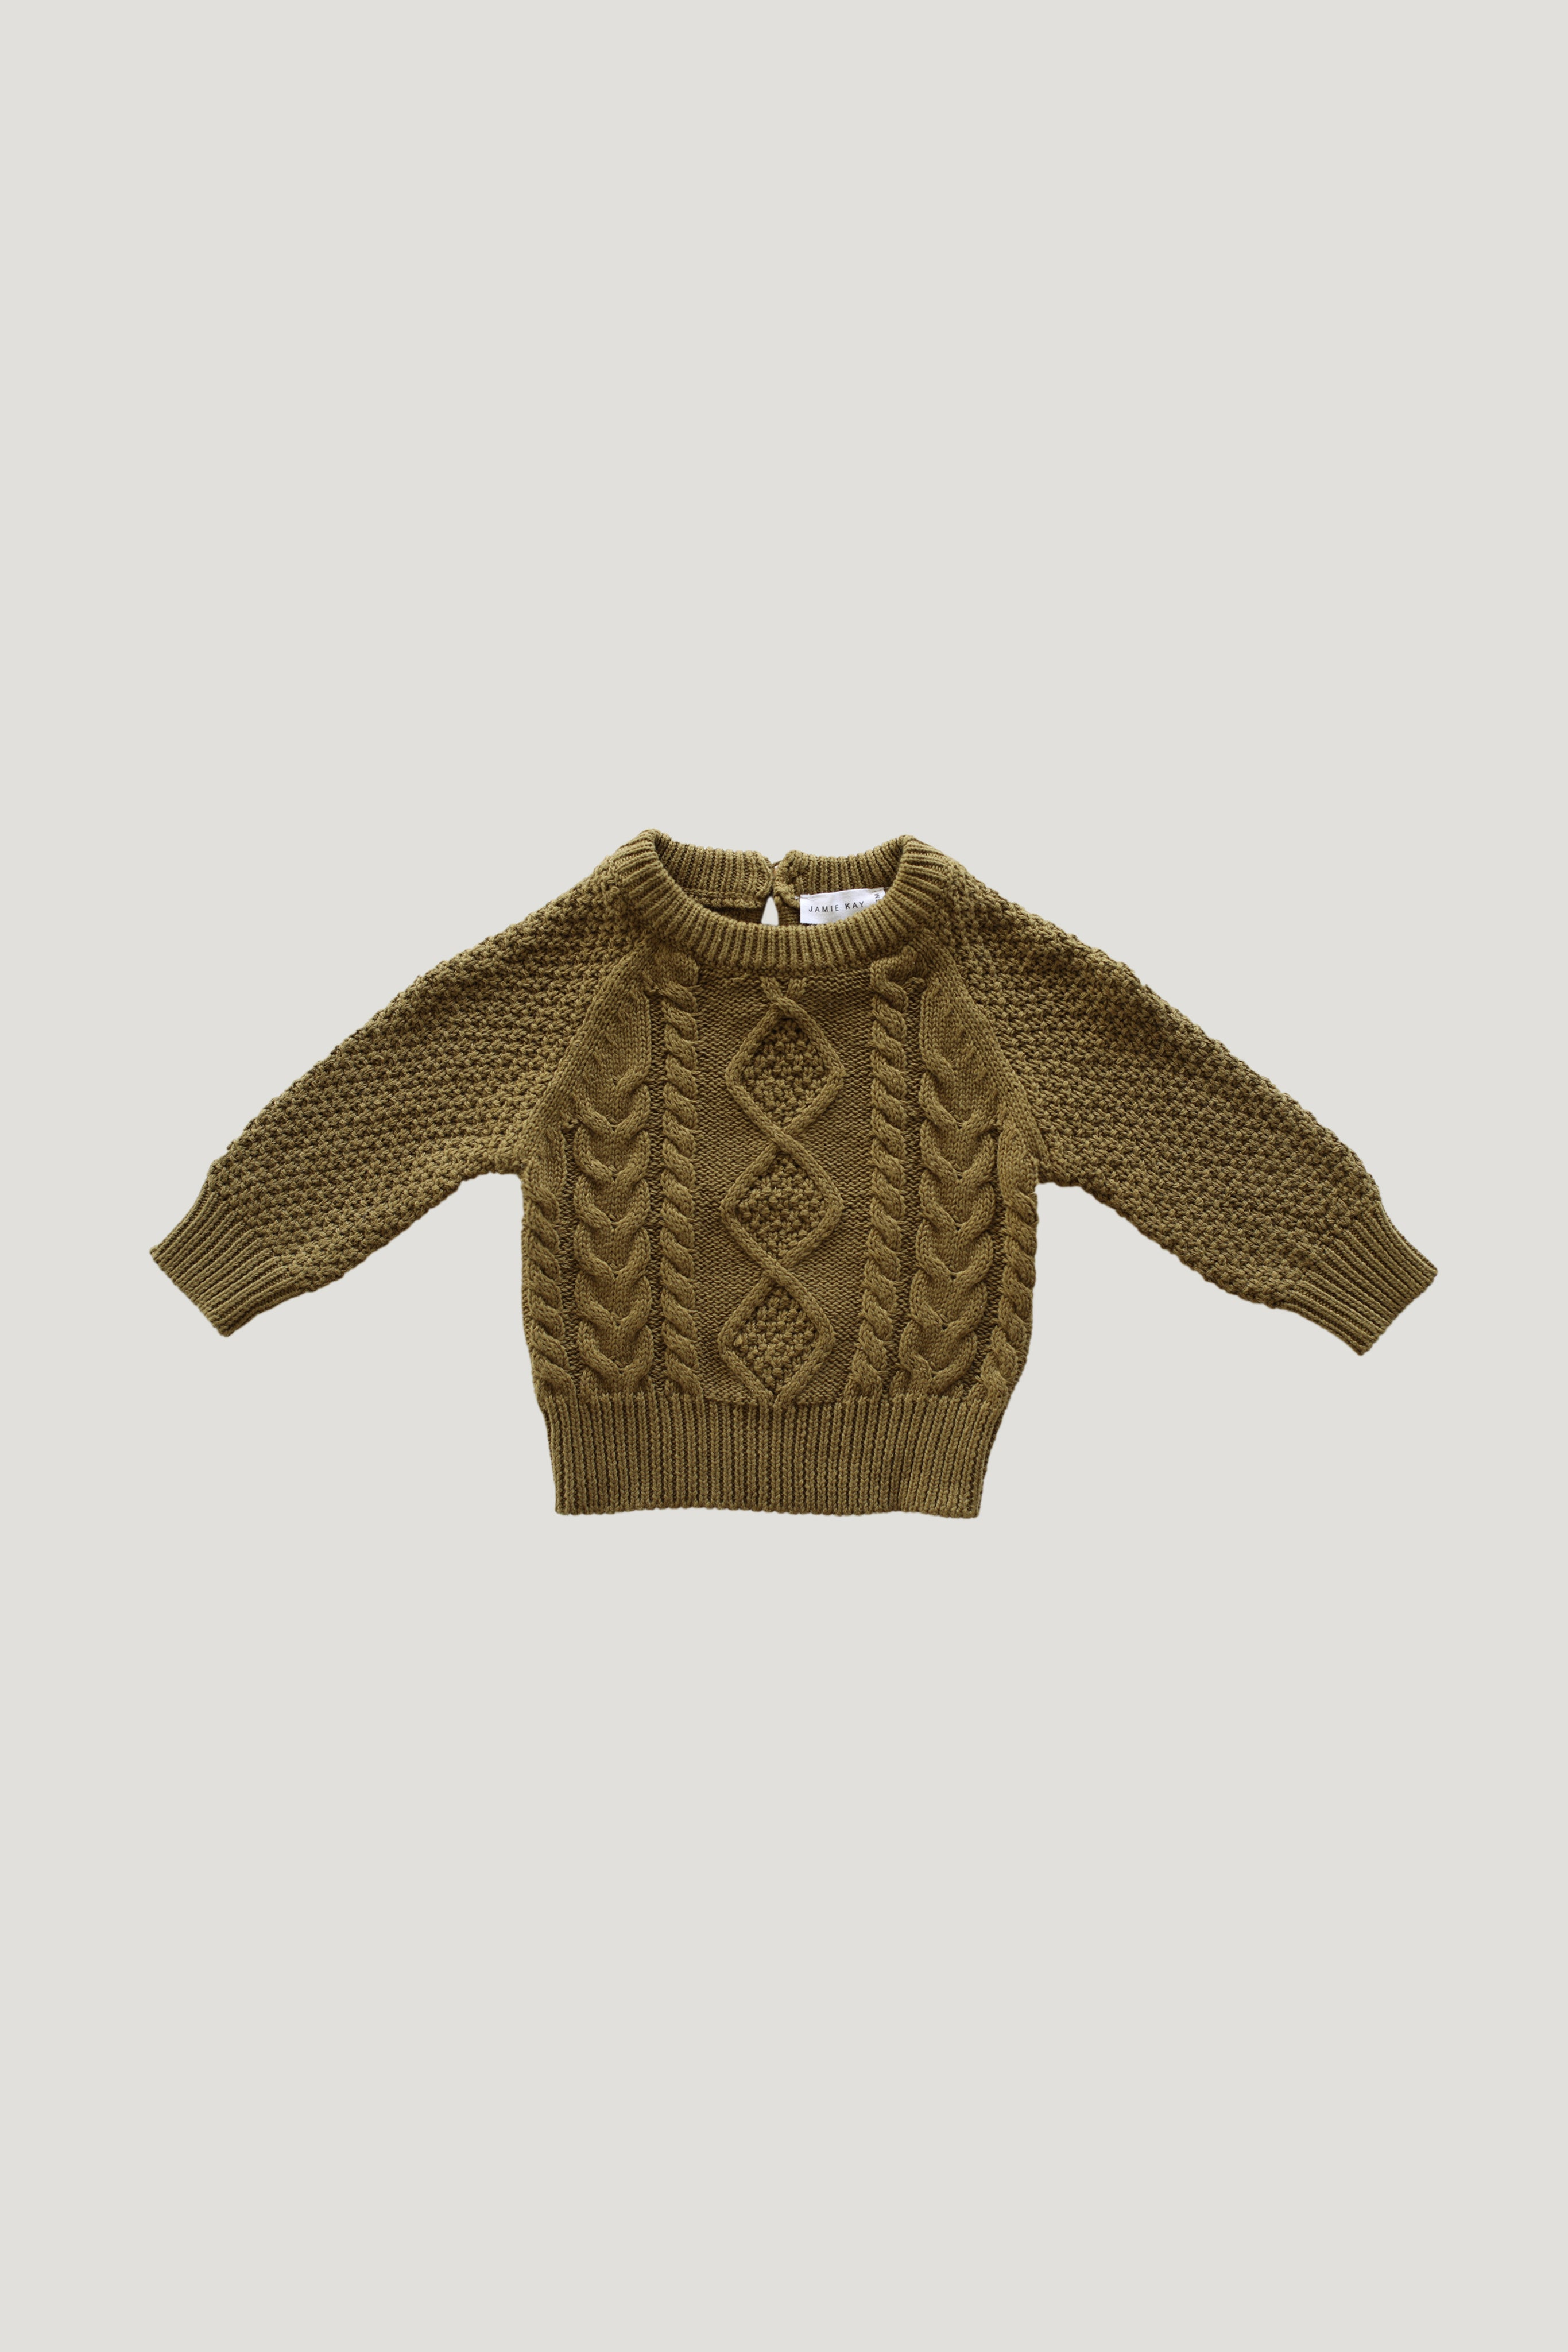 Carter Knit - Thicket